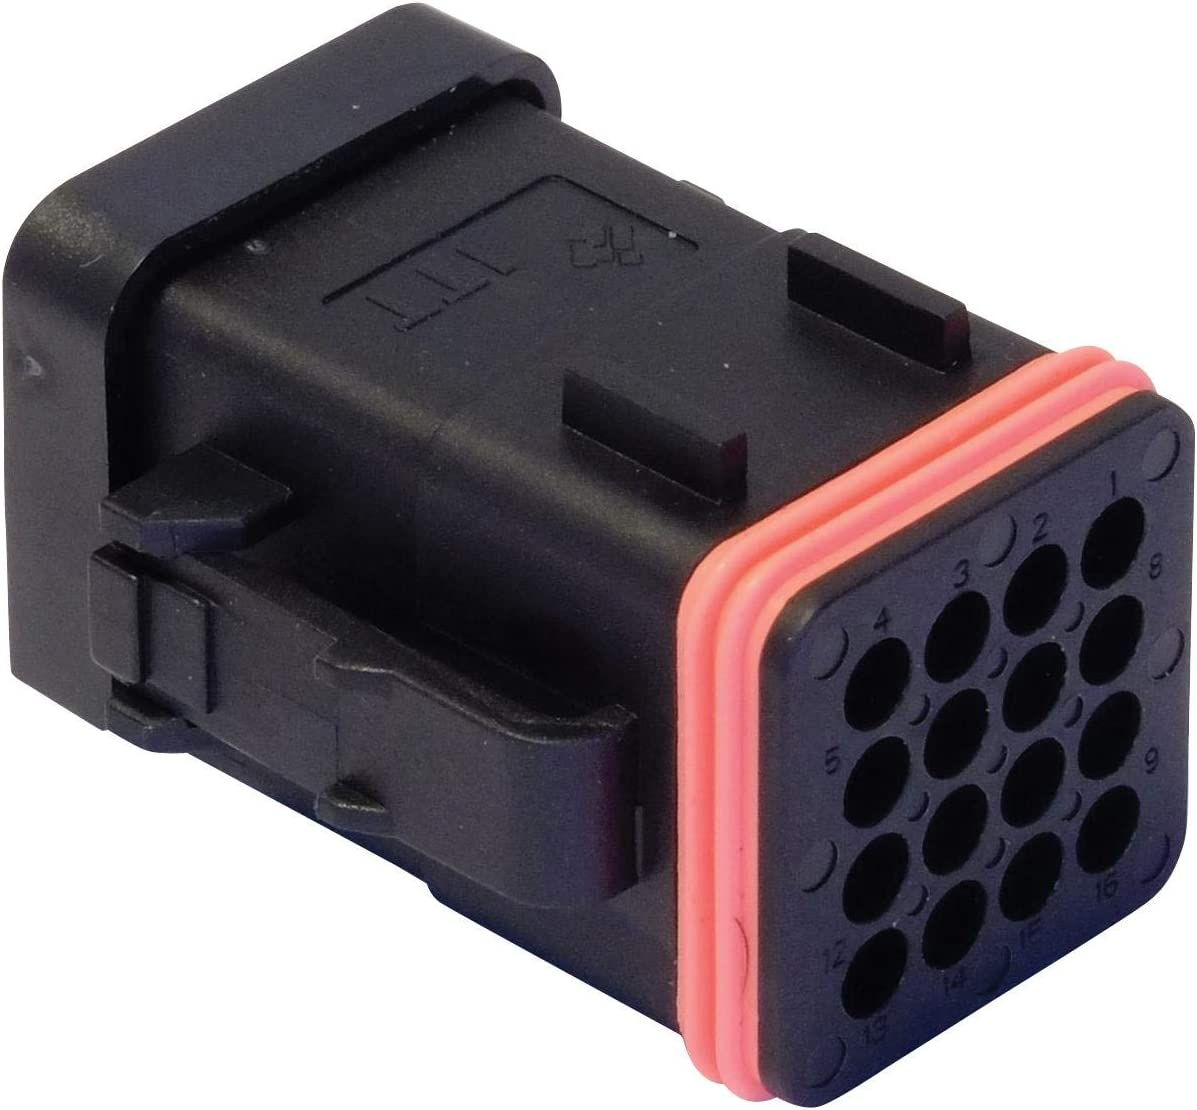 132015-0073 CTC Series 132015-0073 Pack of 10 Automotive Connector Housing Black With Cap Plug 16 Positions